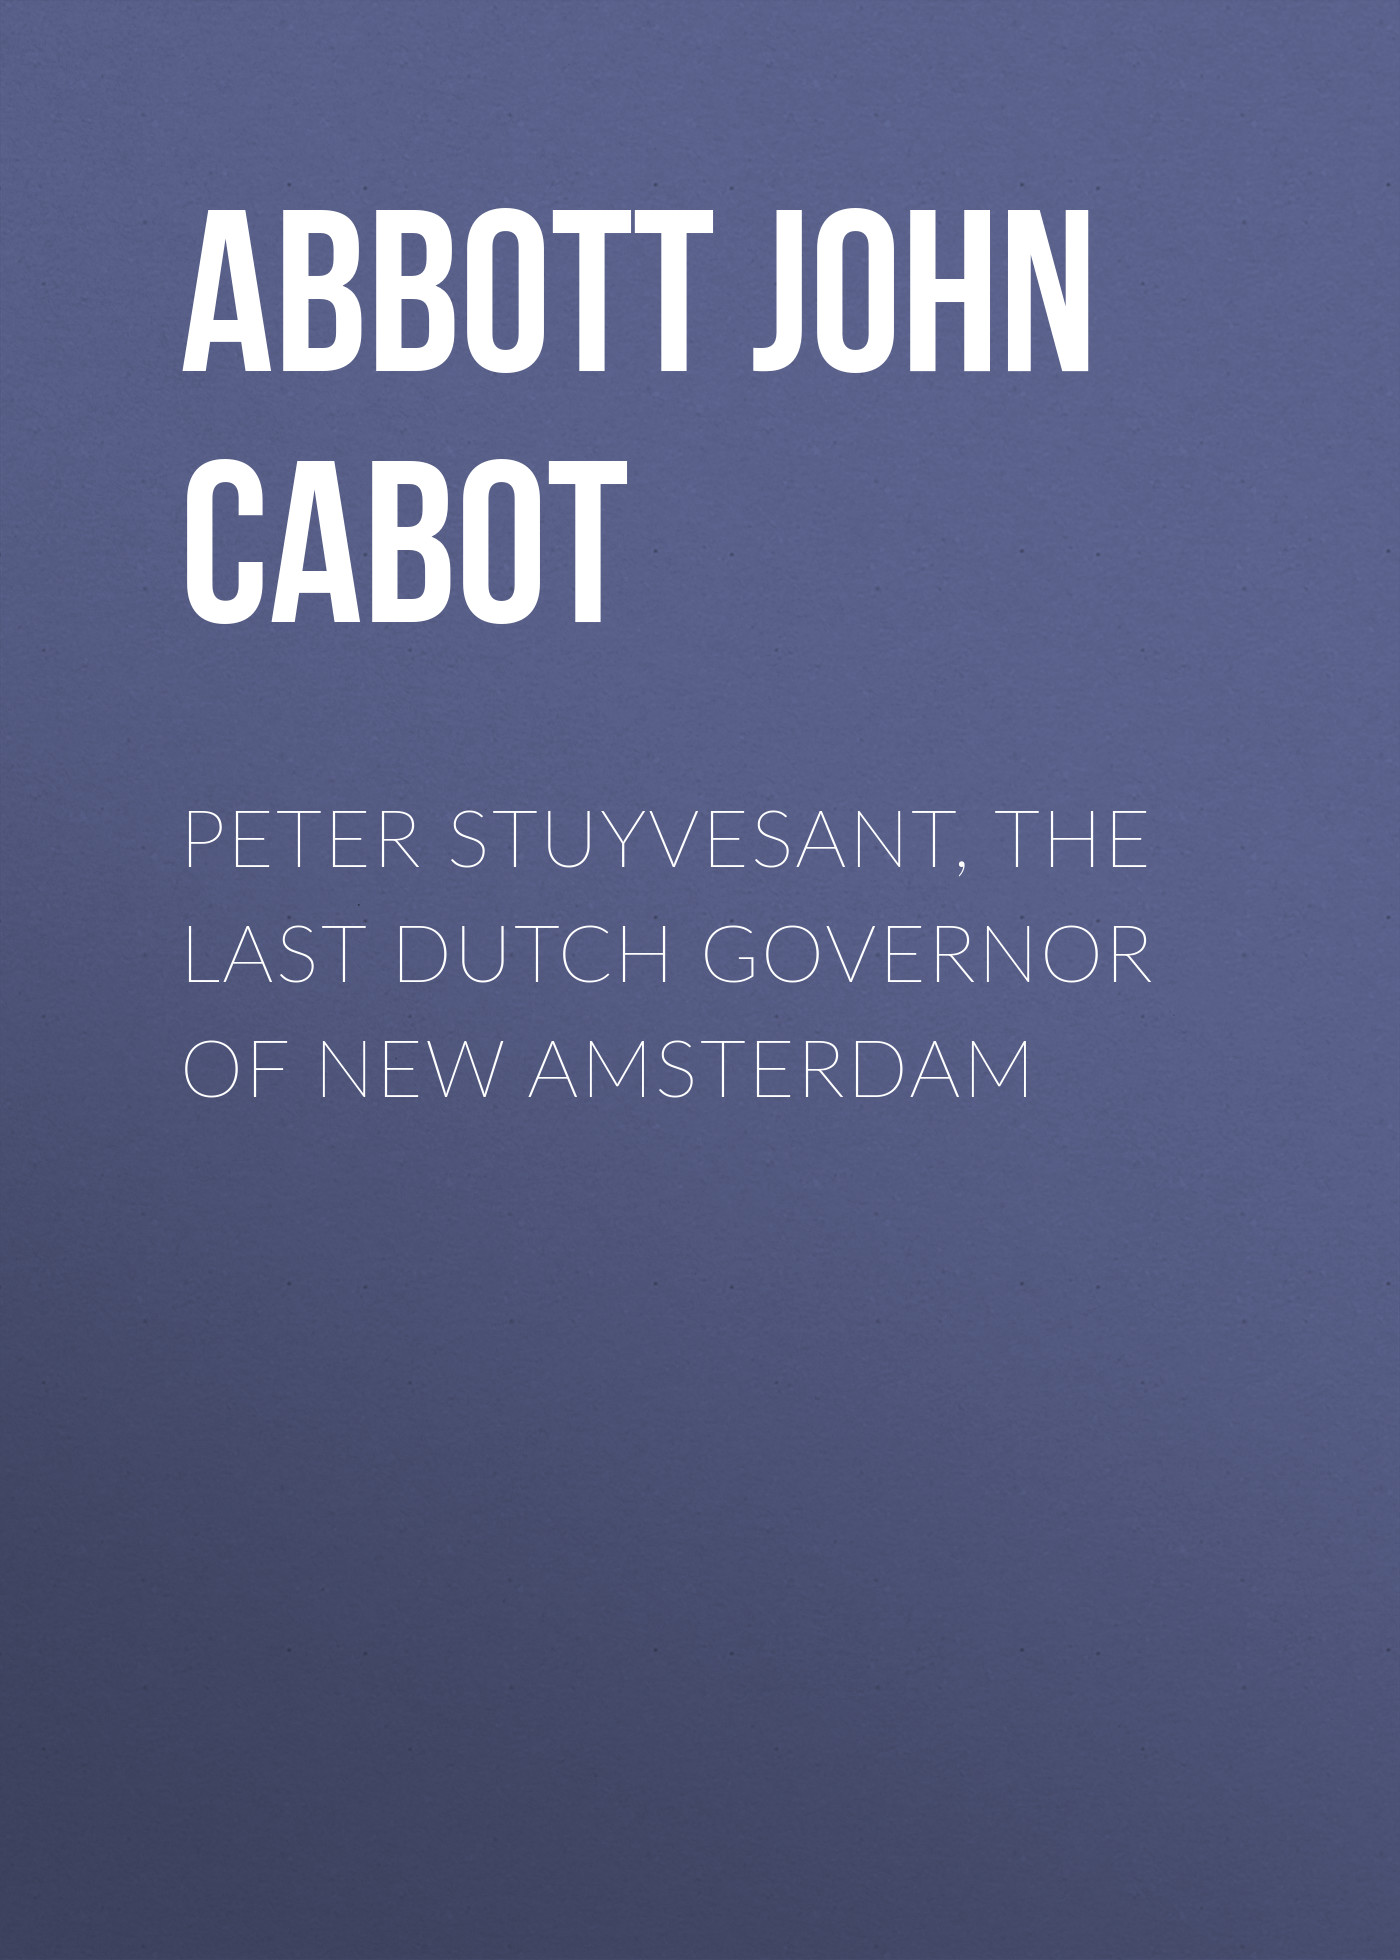 Abbott John Stevens Cabot Peter Stuyvesant, the Last Dutch Governor of New Amsterdam